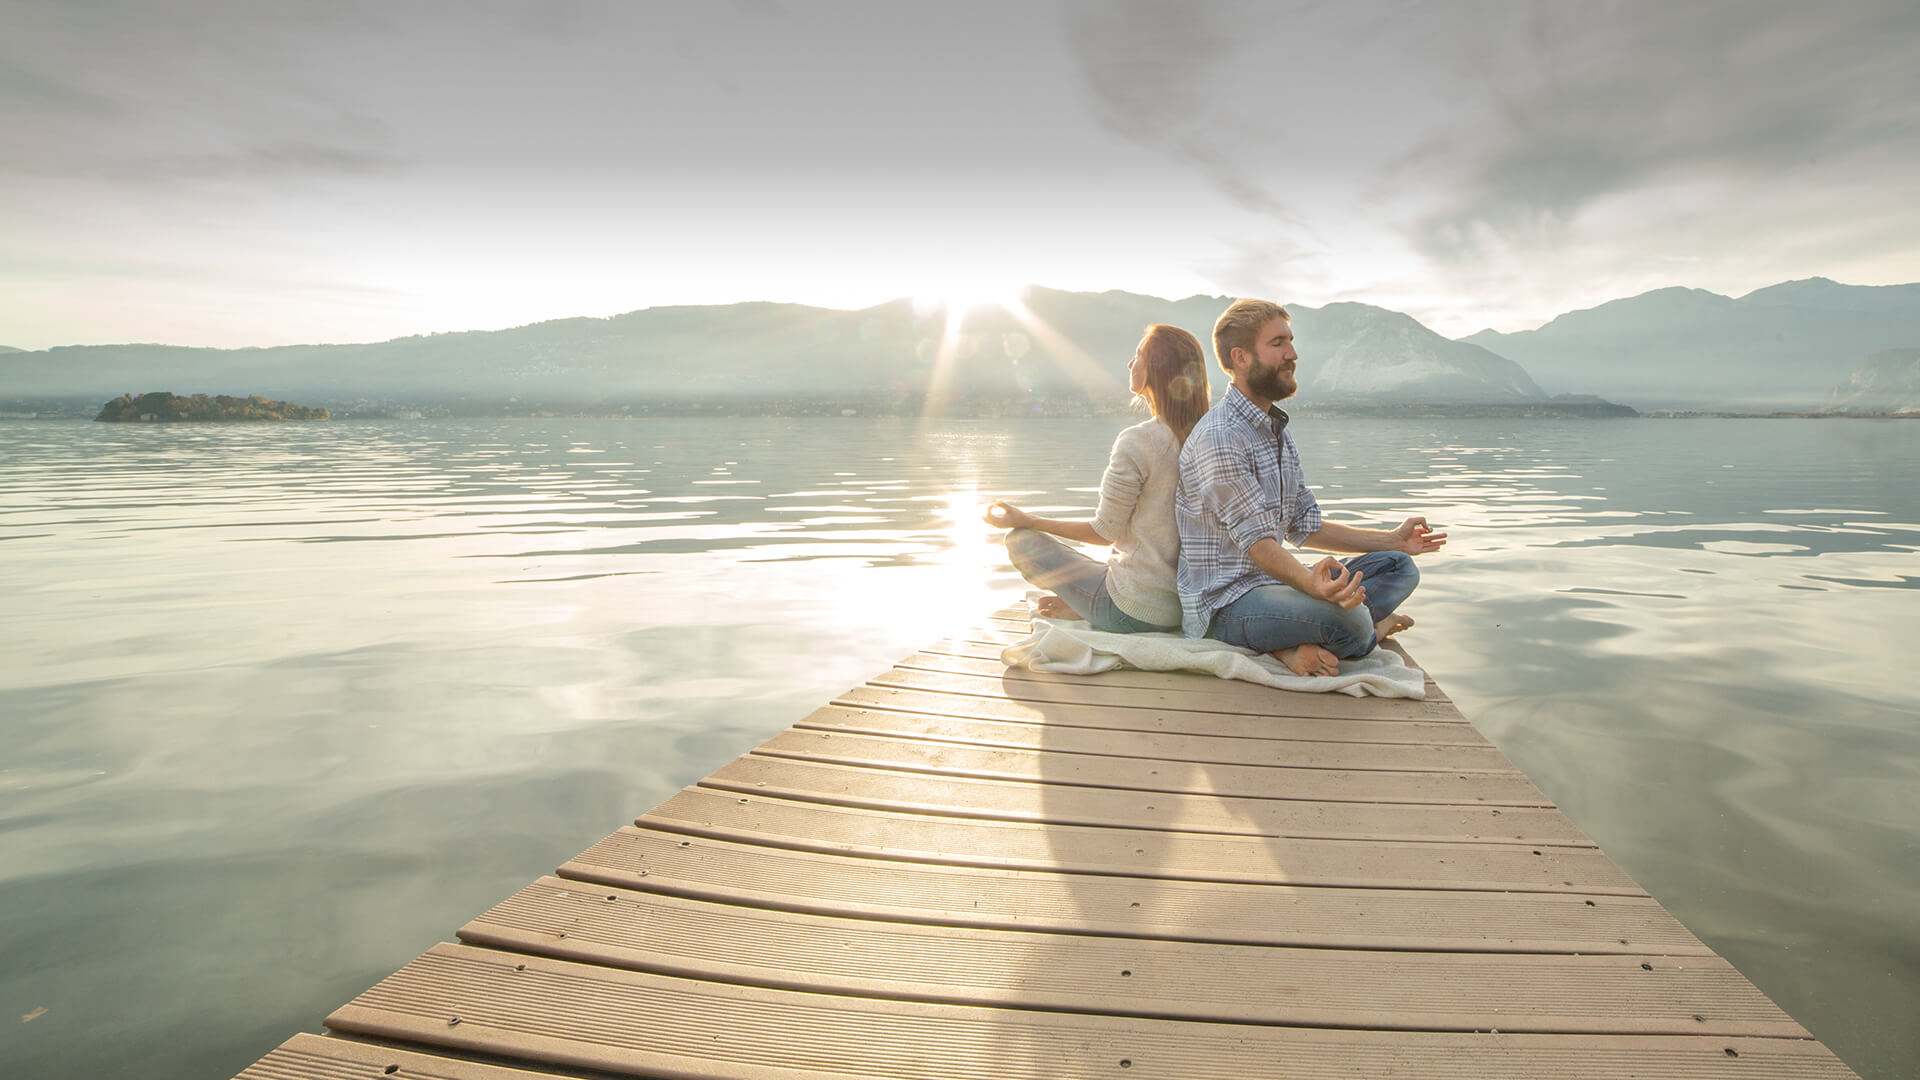 Spiritual dating symbolized by a couple meditating together on a dock